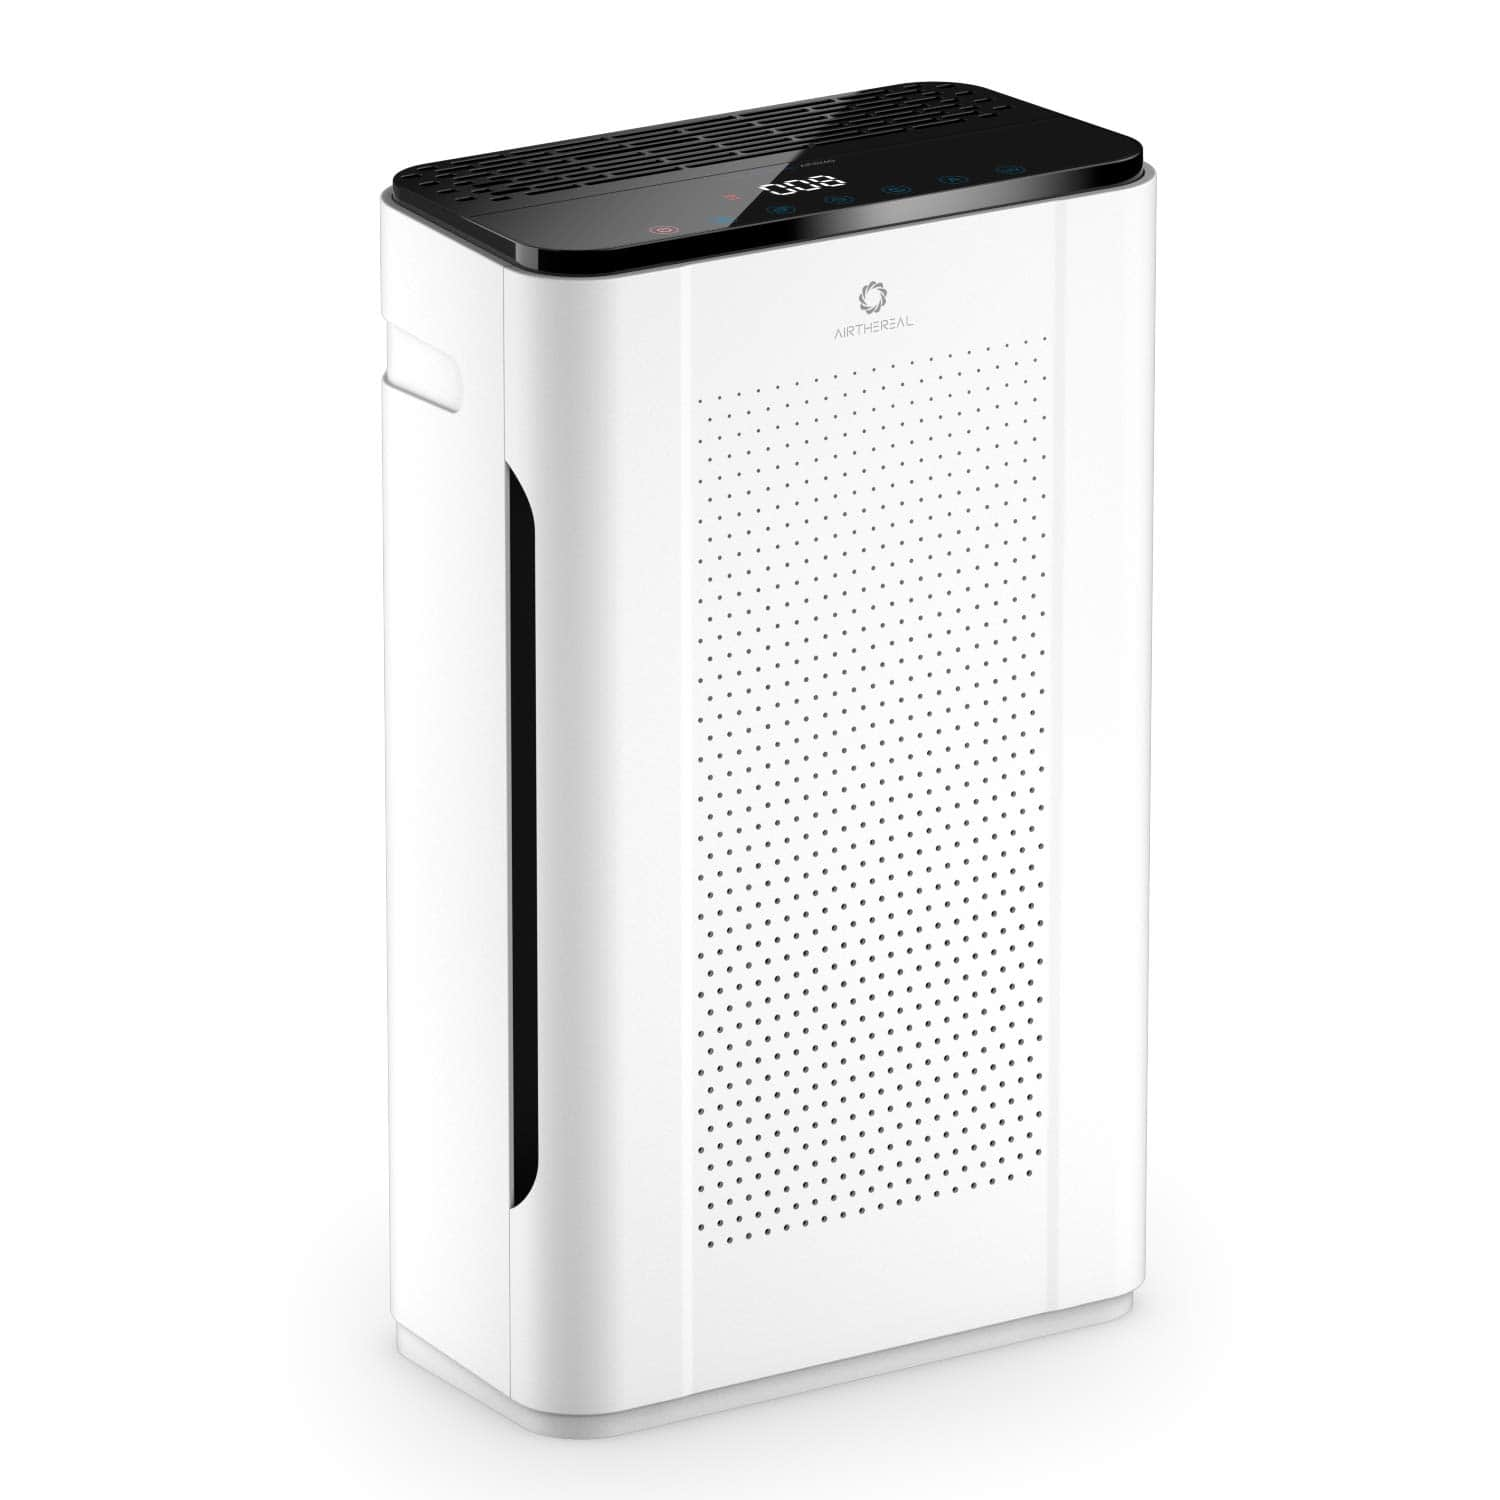 Airthereal Pure Morning APH260 Purifier 7 in 1 True HEPA Filter Air Cleaner Odor Eliminators for Large Rooms, CARB ETL Certified, 152 CFM $89.99